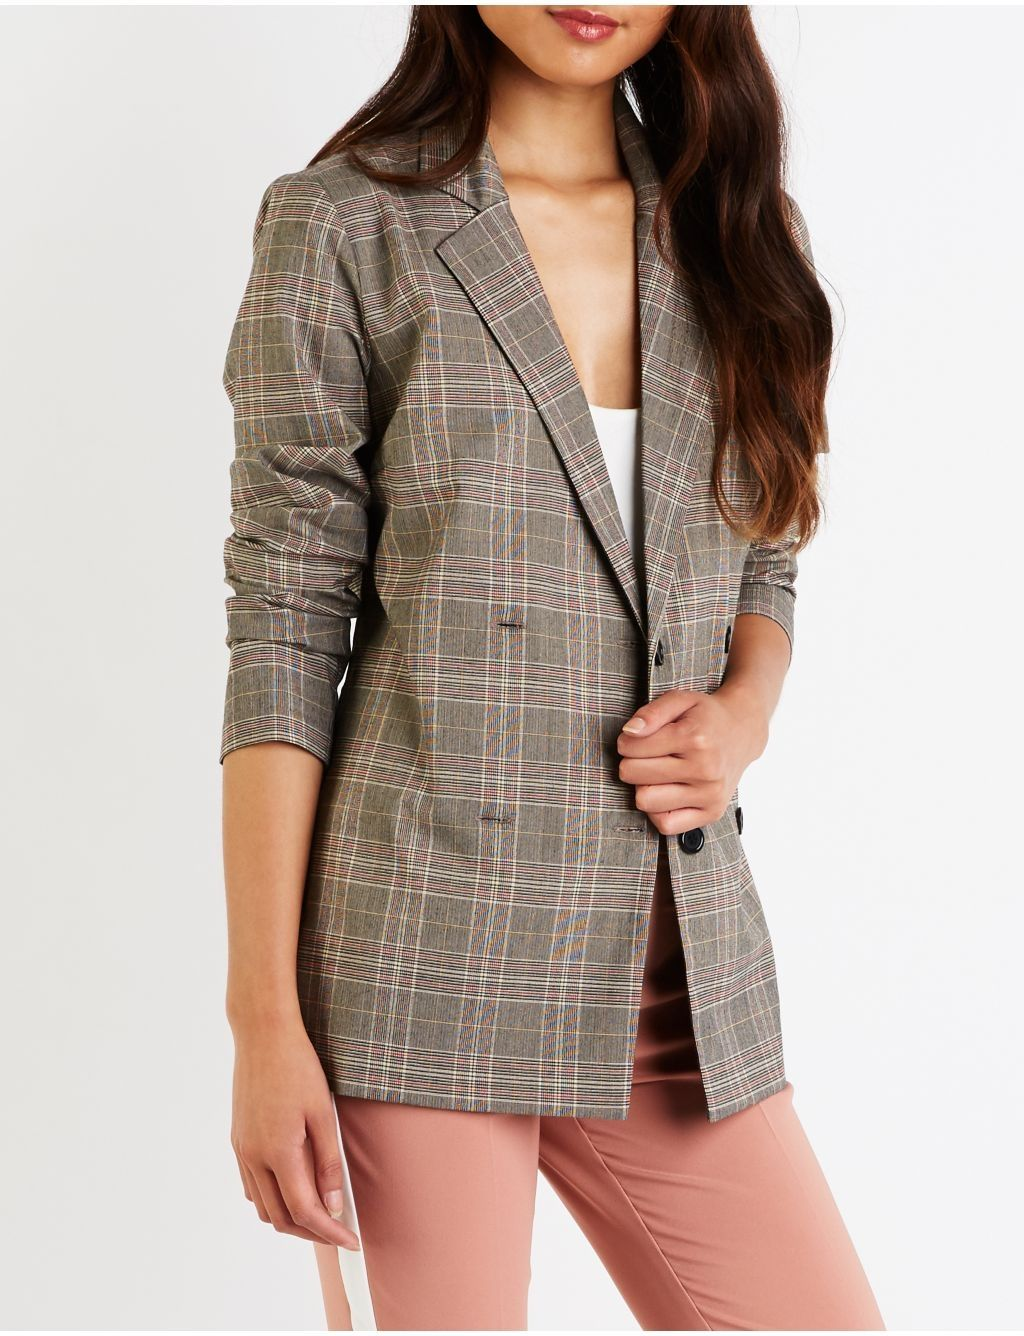 64f98dad35f Buy Charlotte Russe Plaid Double Breasted Blazer in Egypt